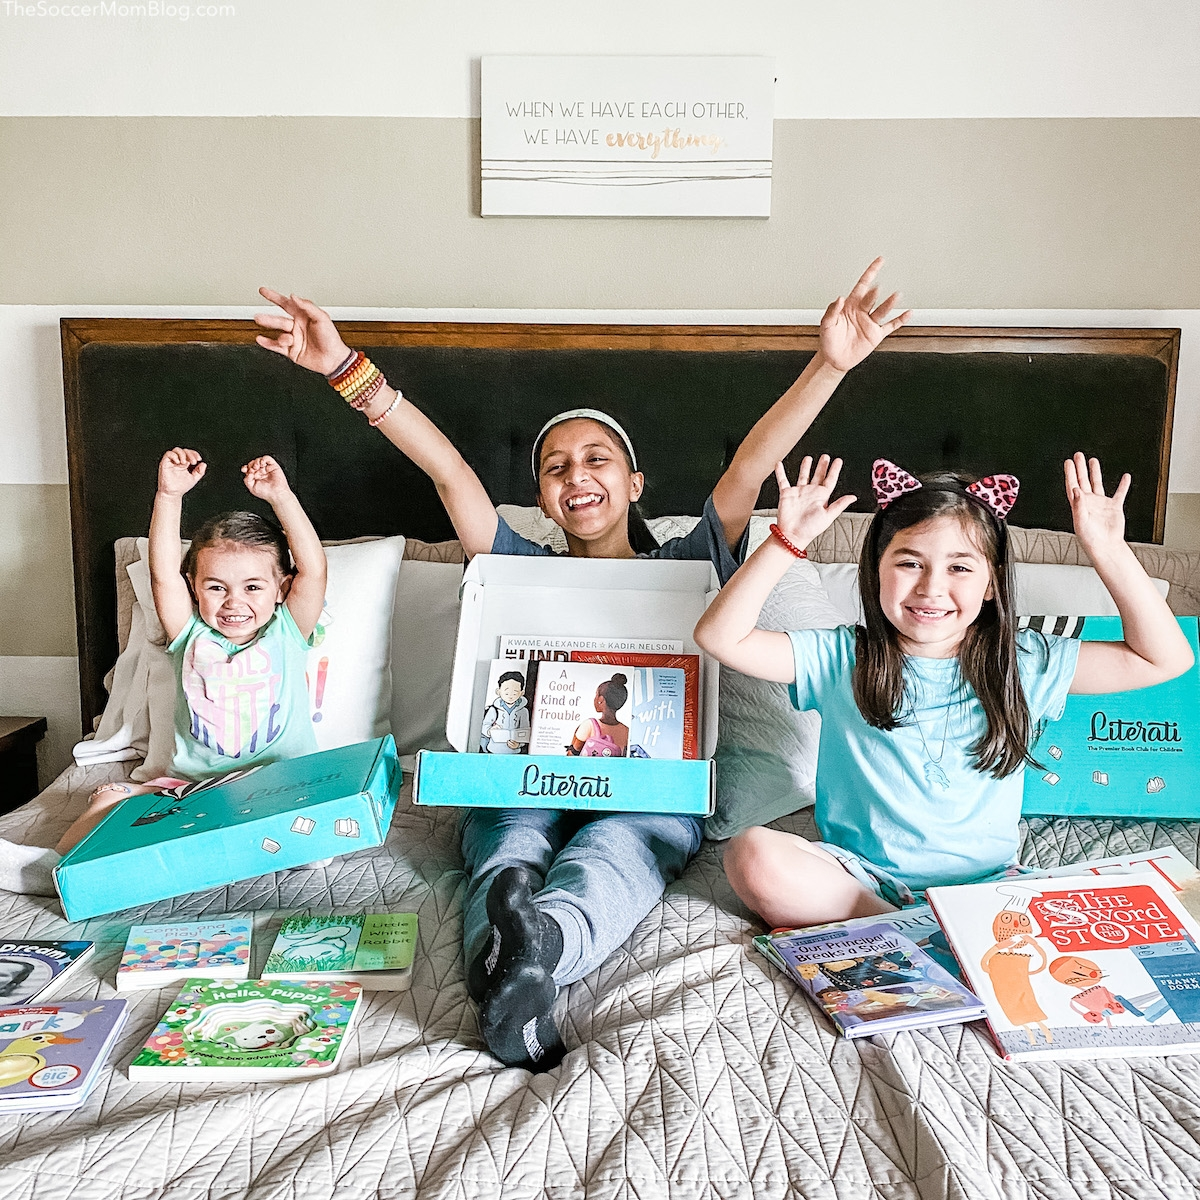 kids holding Literati book club boxes and cheering